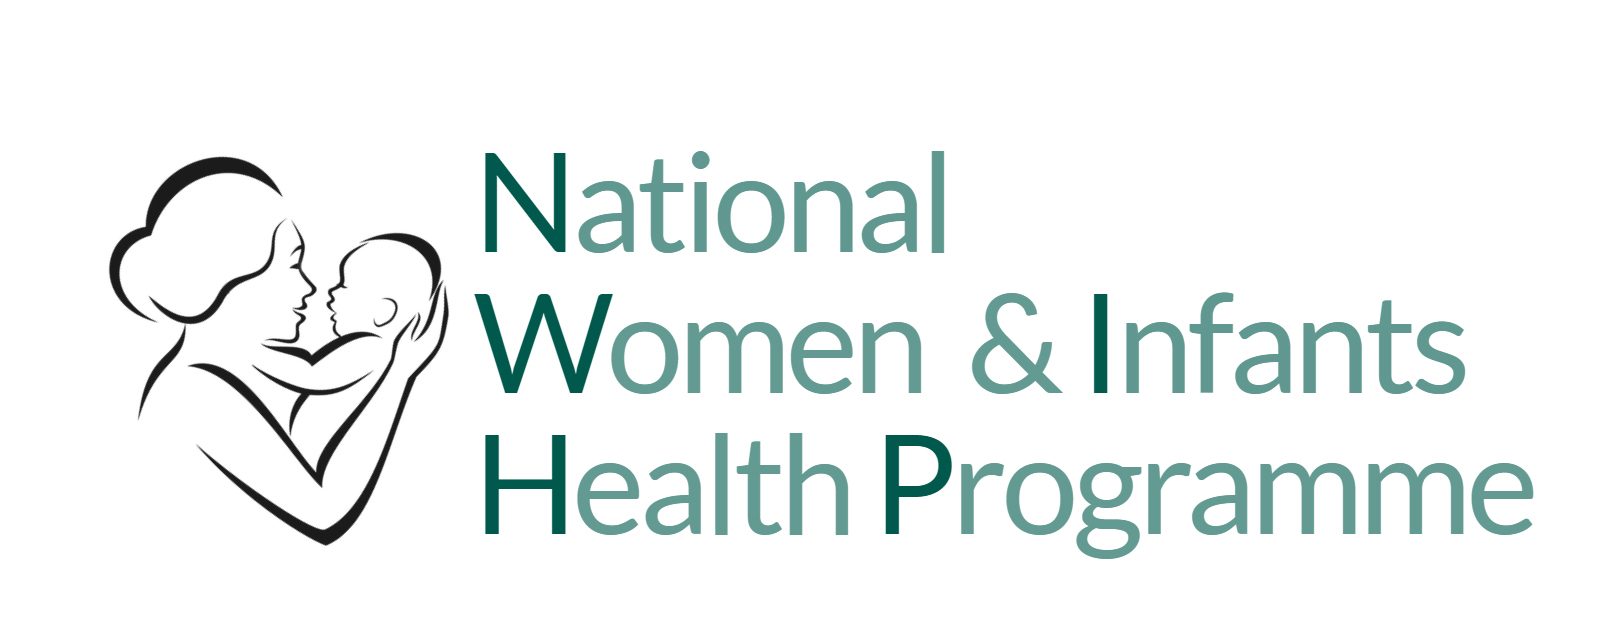 national-women-and-infants-health-programme